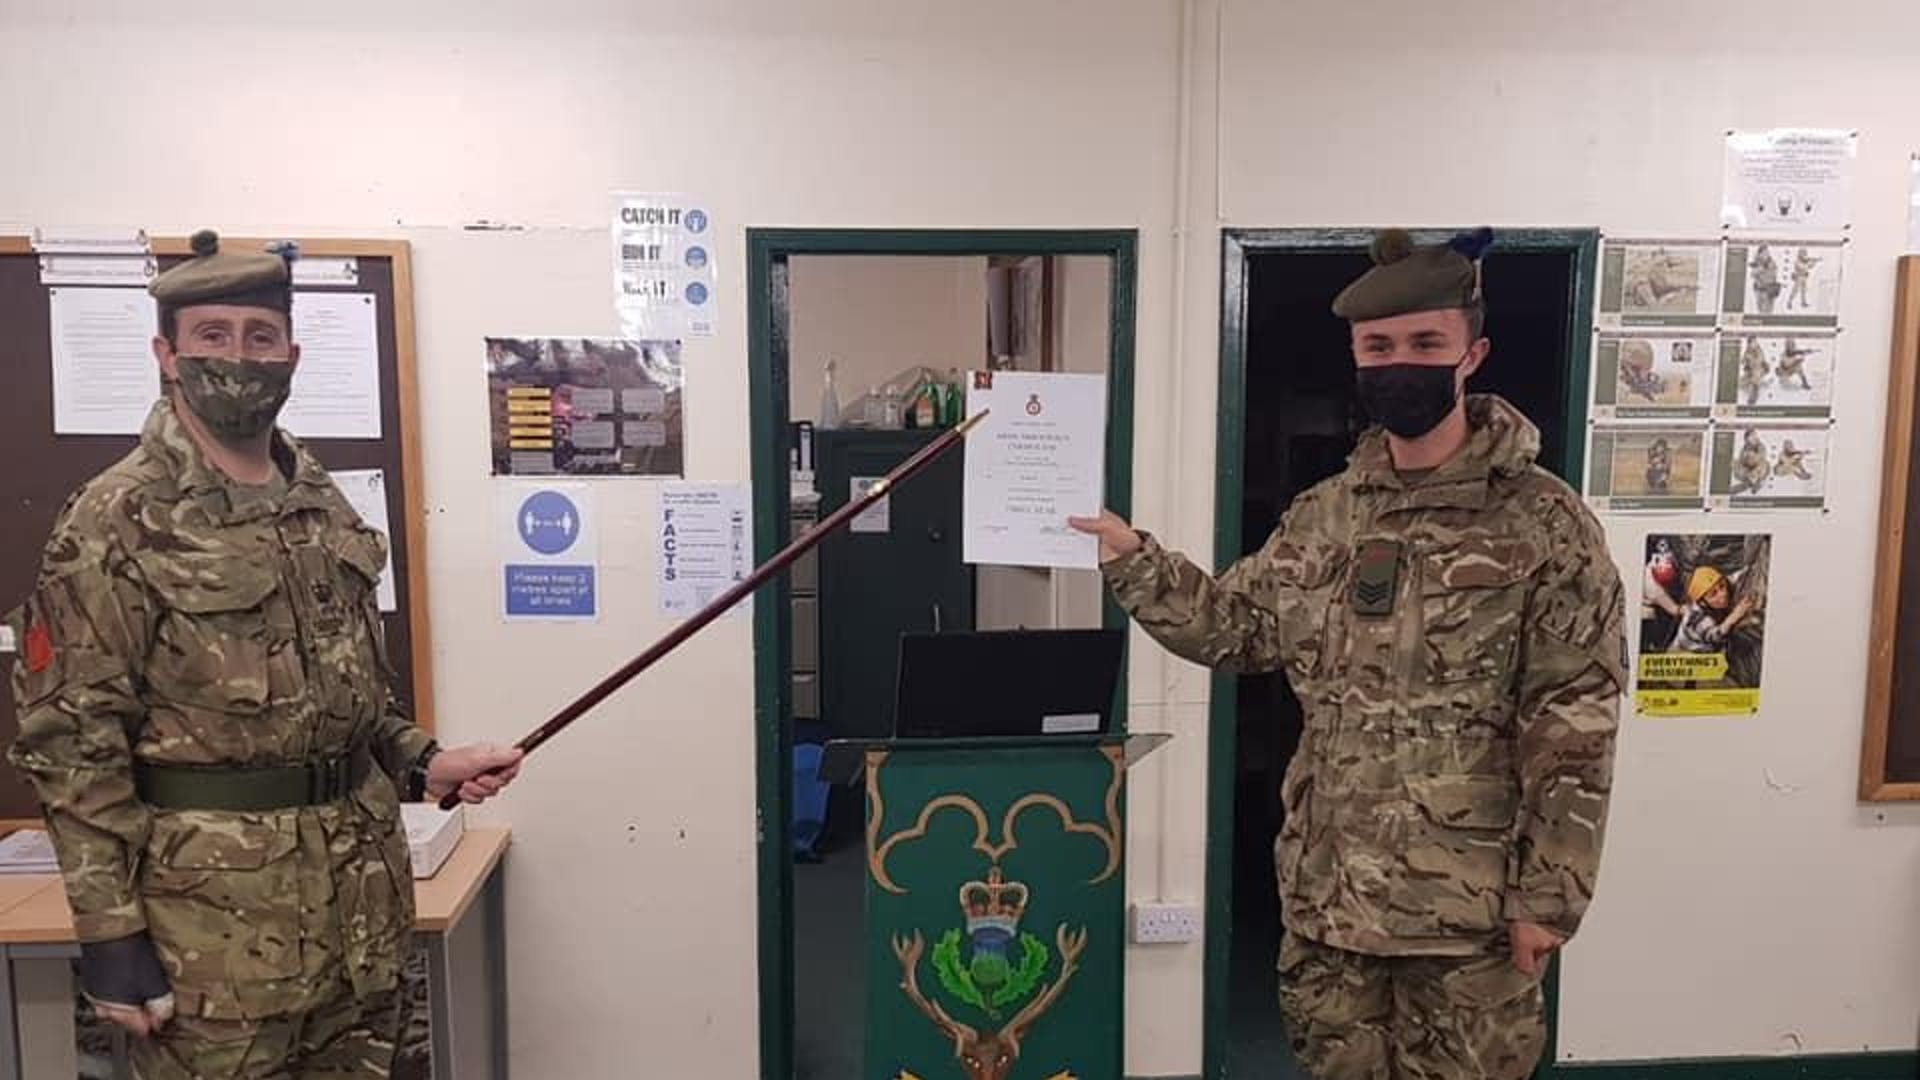 Sgt Lewis Squire right being awarded his 3 Star by Detachment Commander CSMI Mac Iver